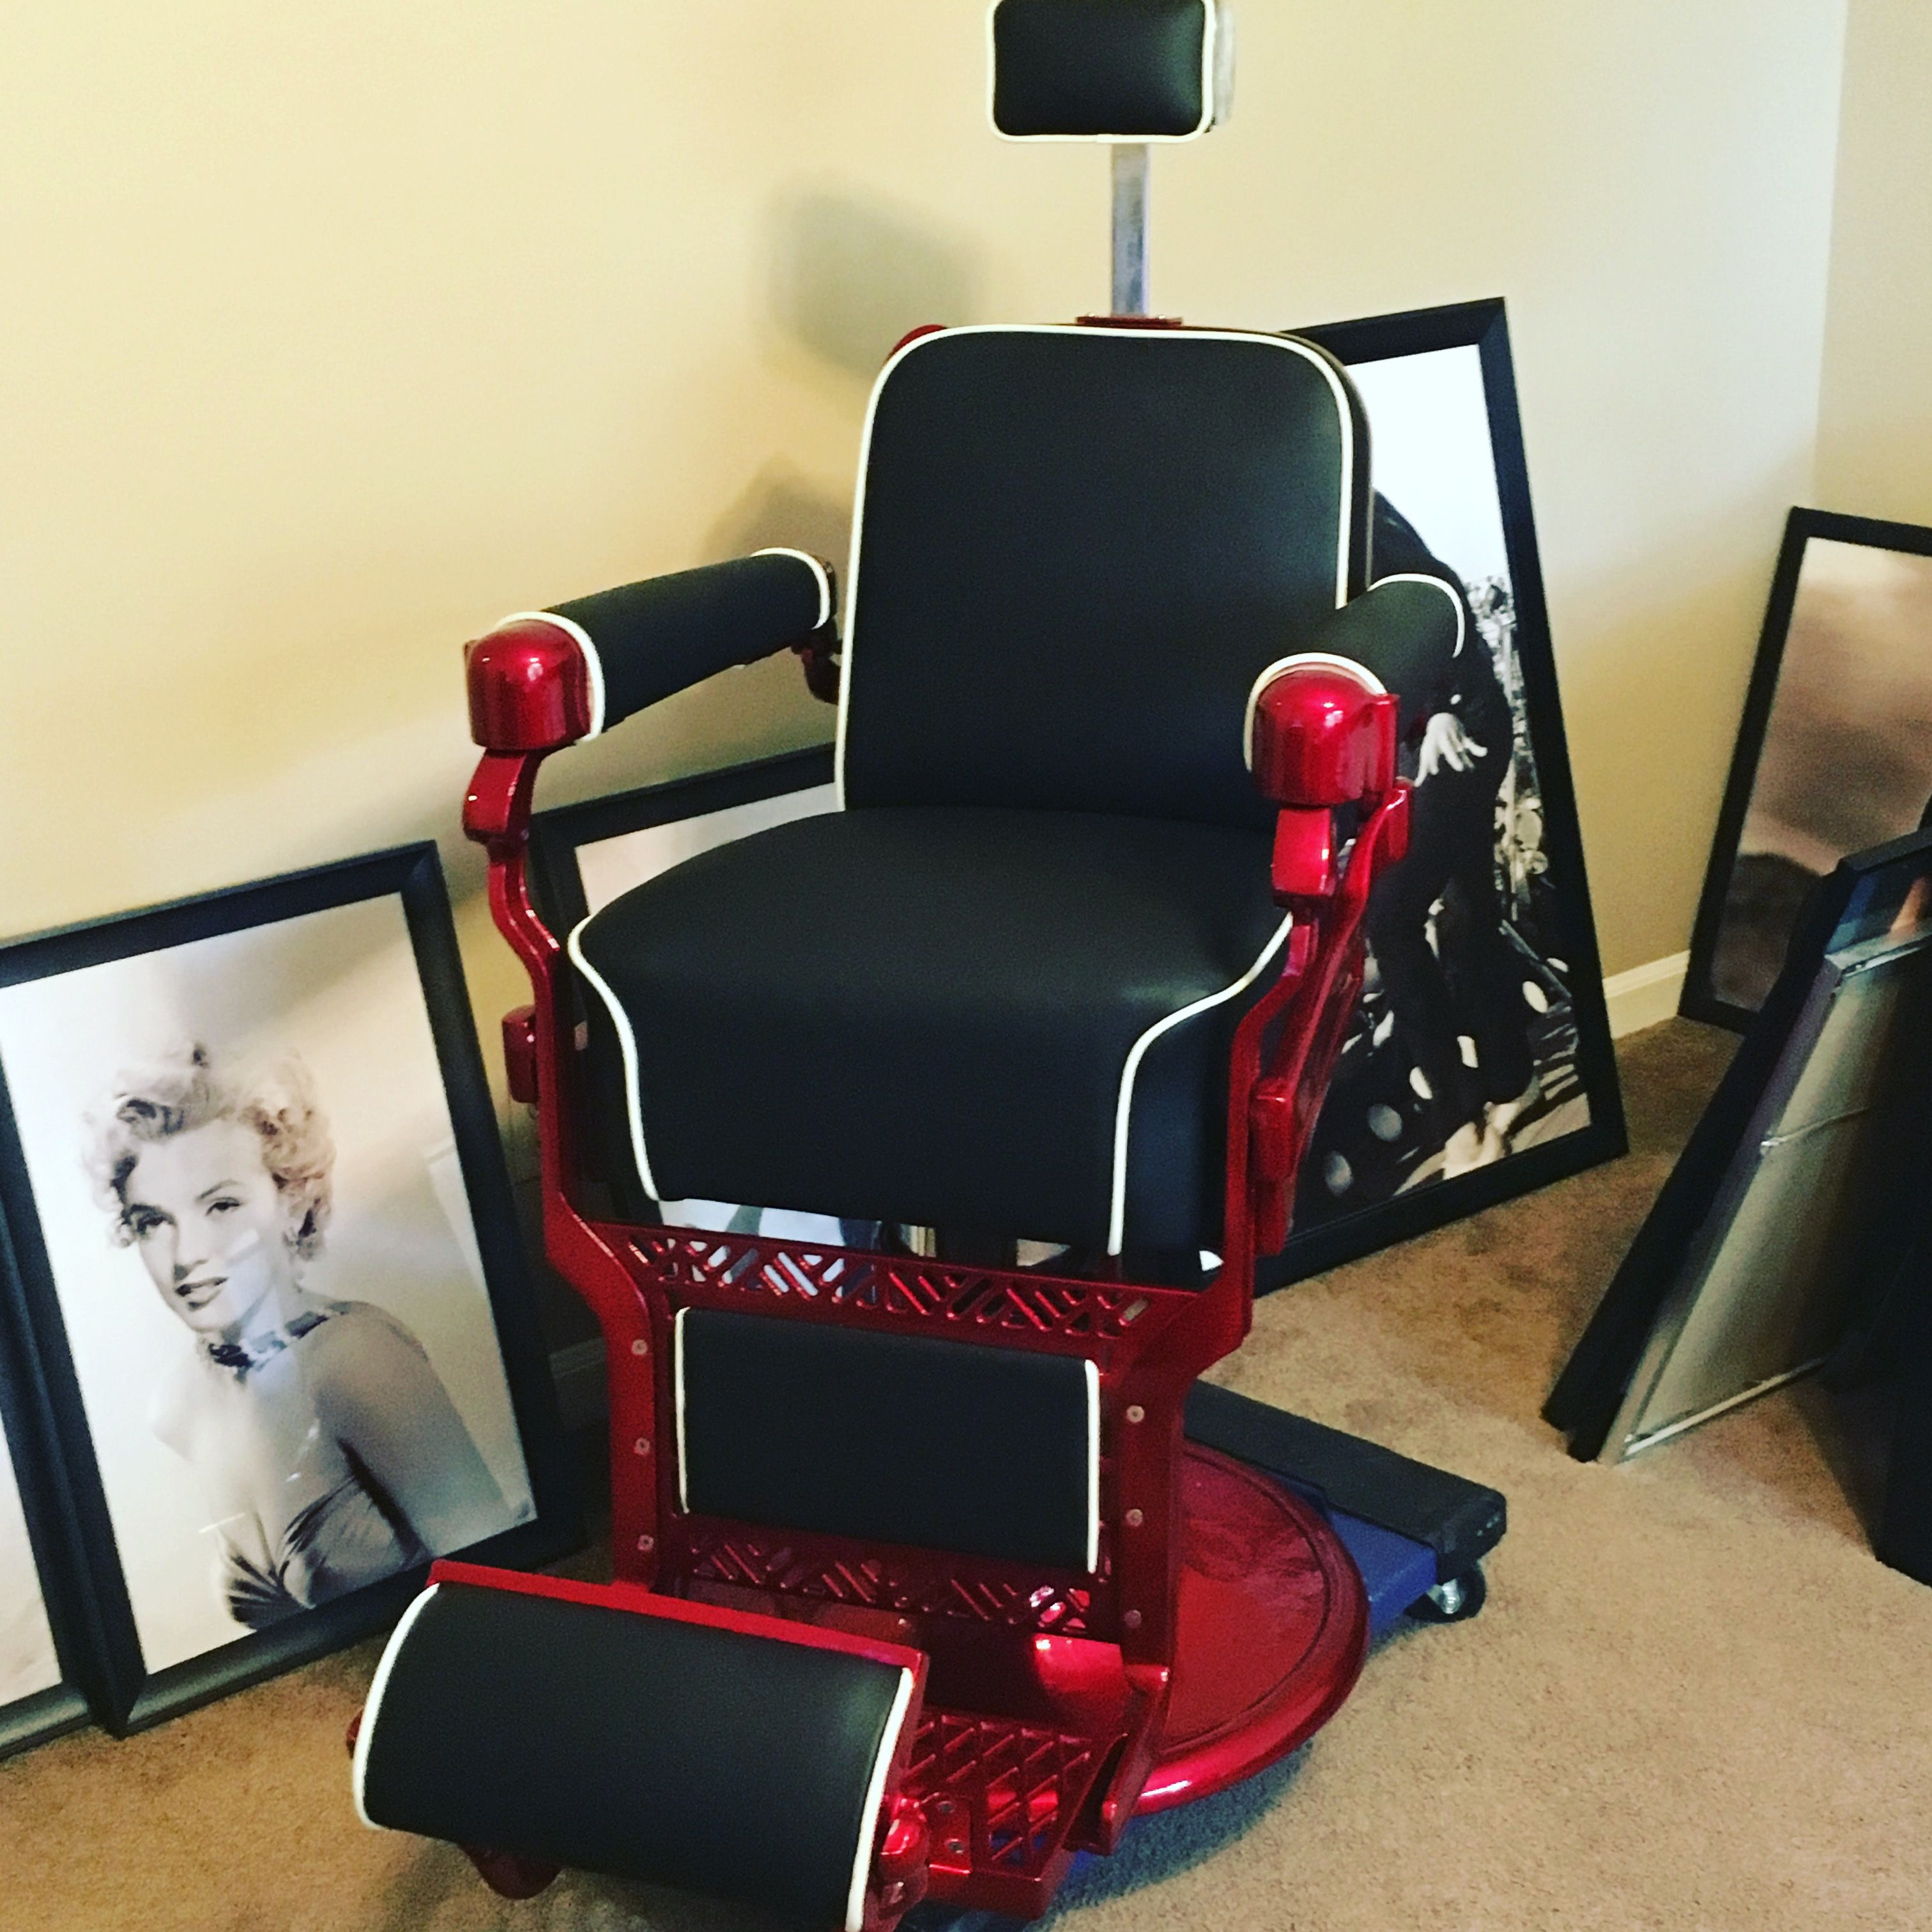 Belmont Barber Chair For Sale My Belmont Barber Chair That I 39m Redoing To My Liking